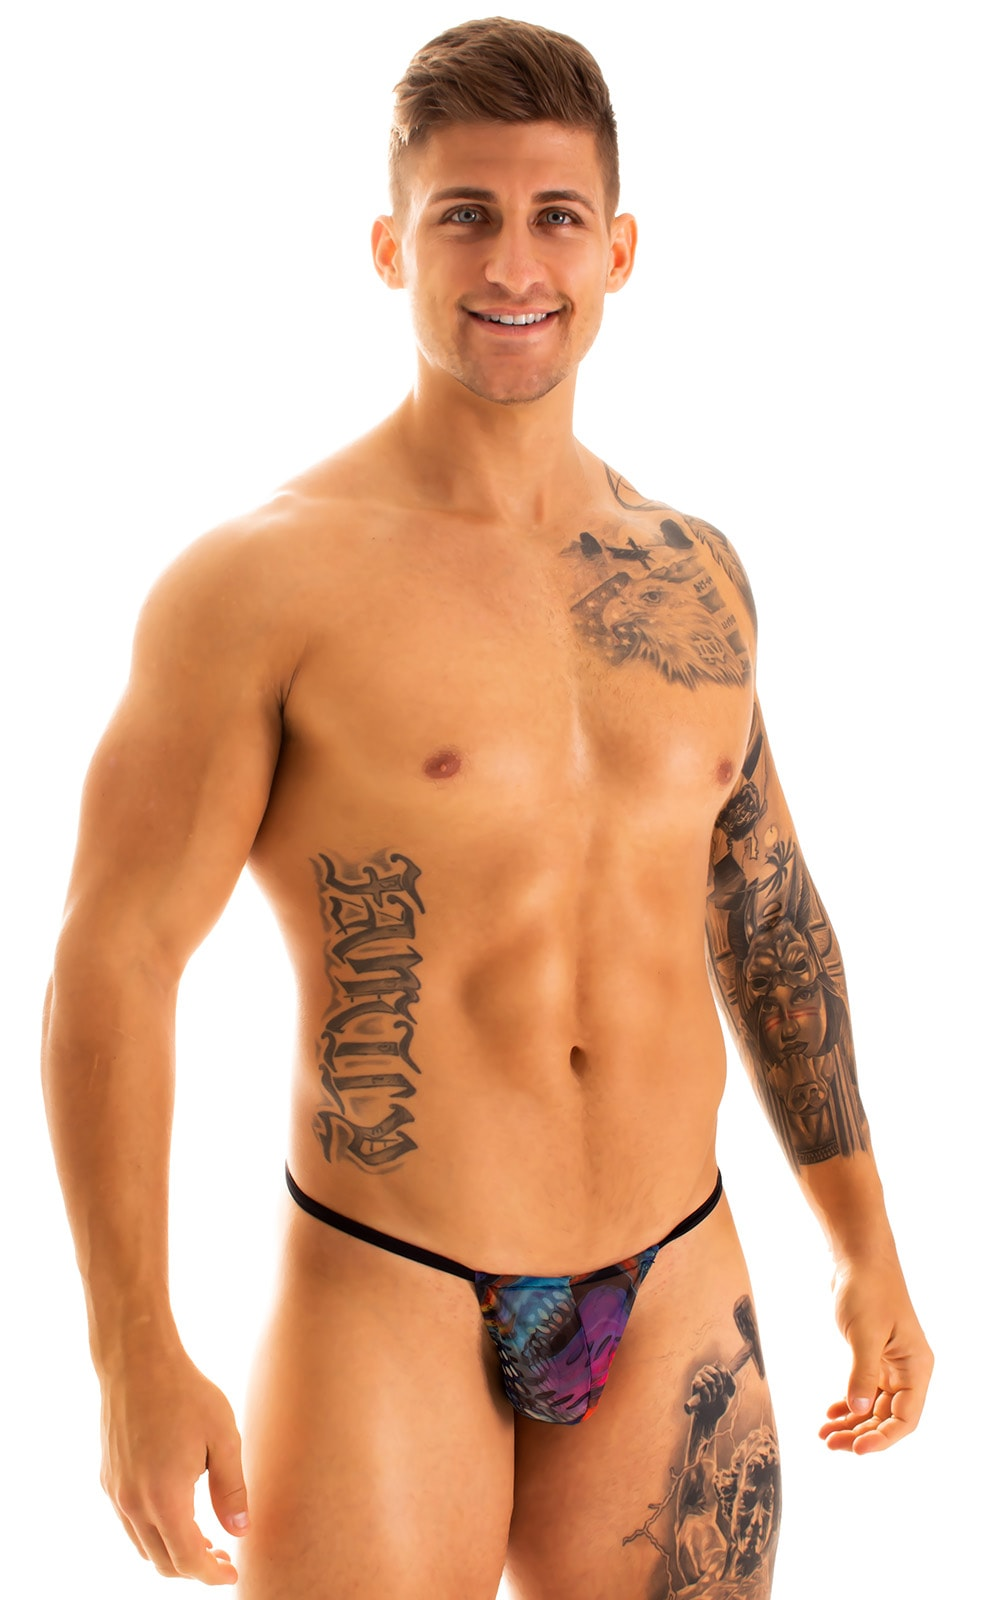 G String Swimsuit - Adjustable Pouch in Super Aquarious Mesh with Black Strings  1